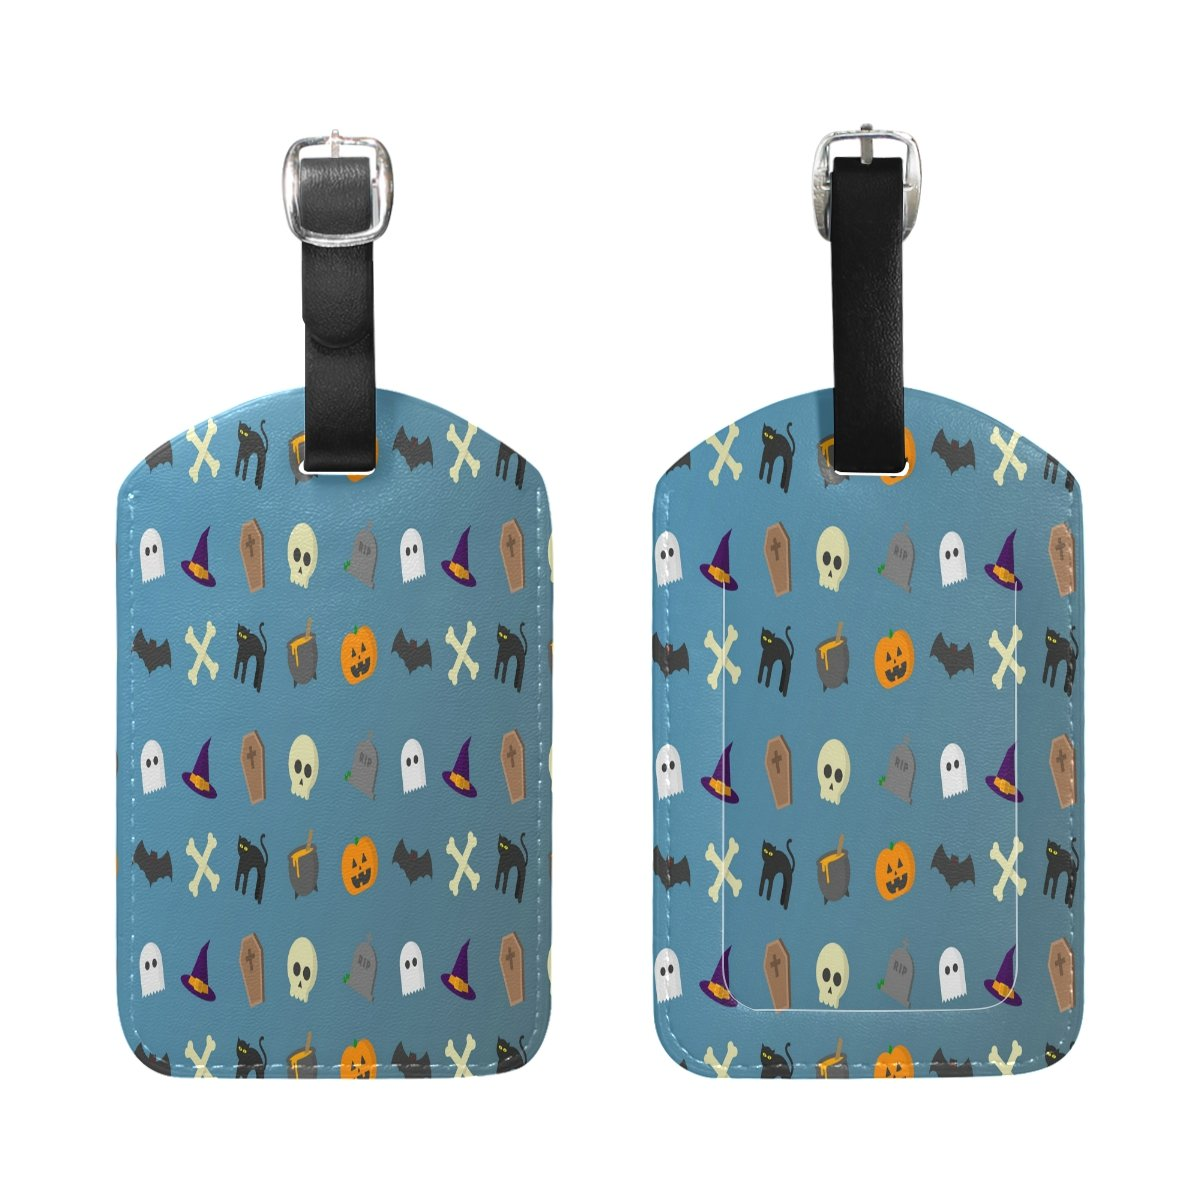 1Pcs Saobao Travel Luggage Tag Halloween Style Skull And Pumpkin PU Leather Baggage Suitcase Travel ID Bag Tag